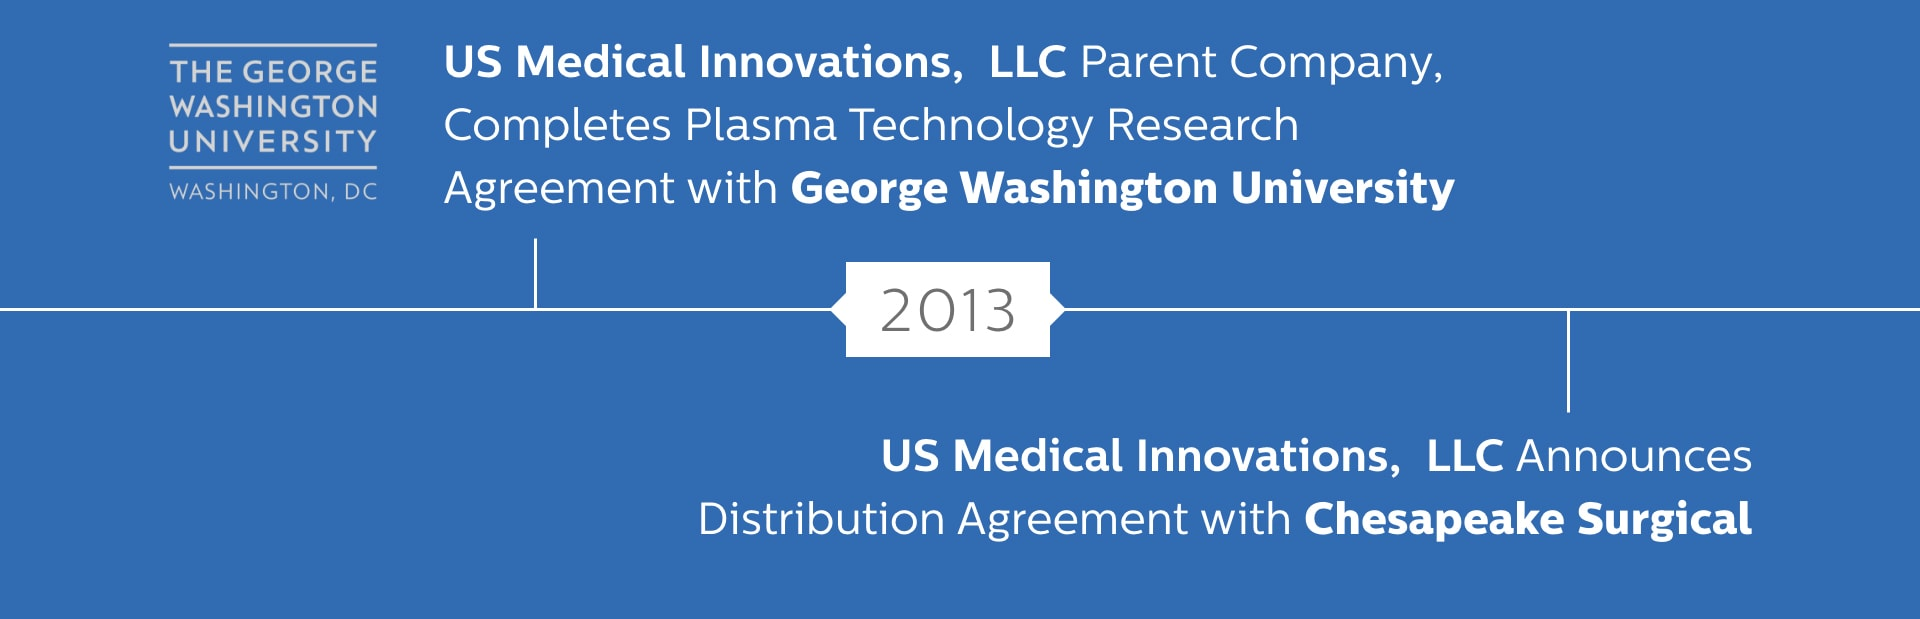 USMI announces agreements with George Washington University and Chesapeake Surgical.